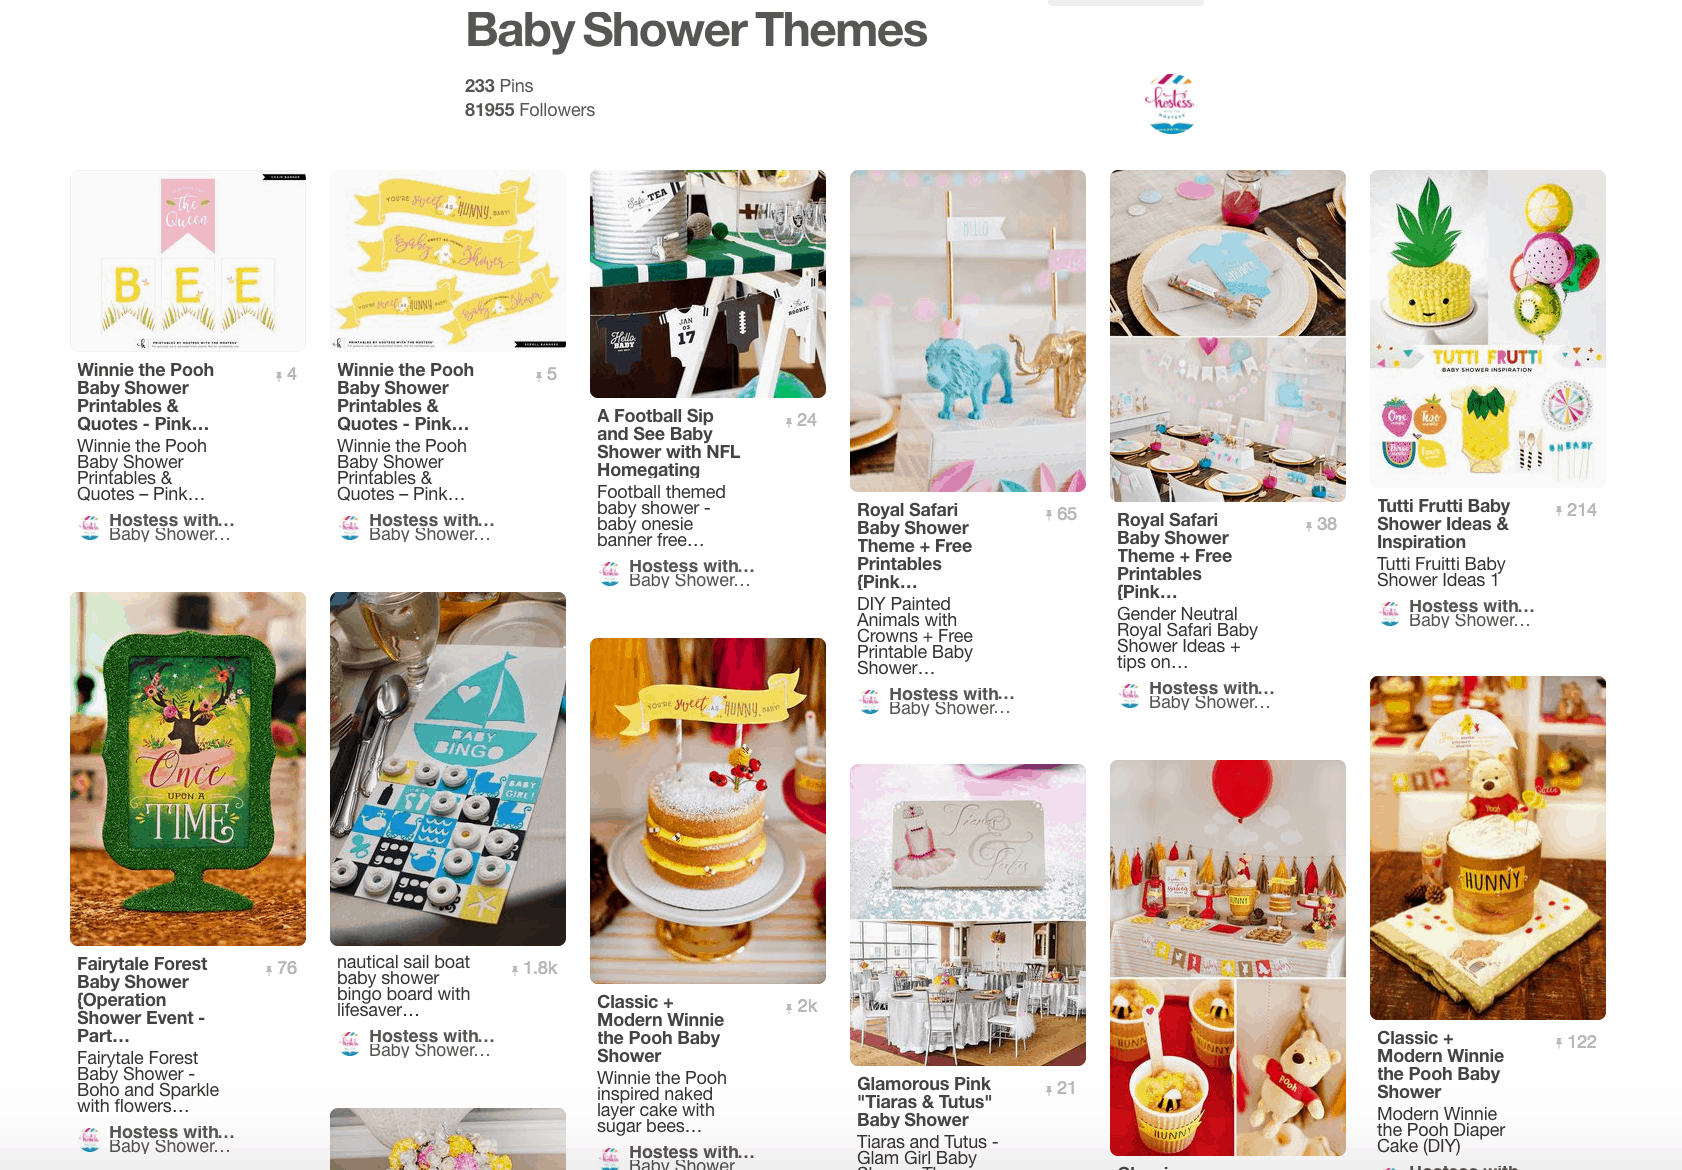 Several images for different baby showers in collage.